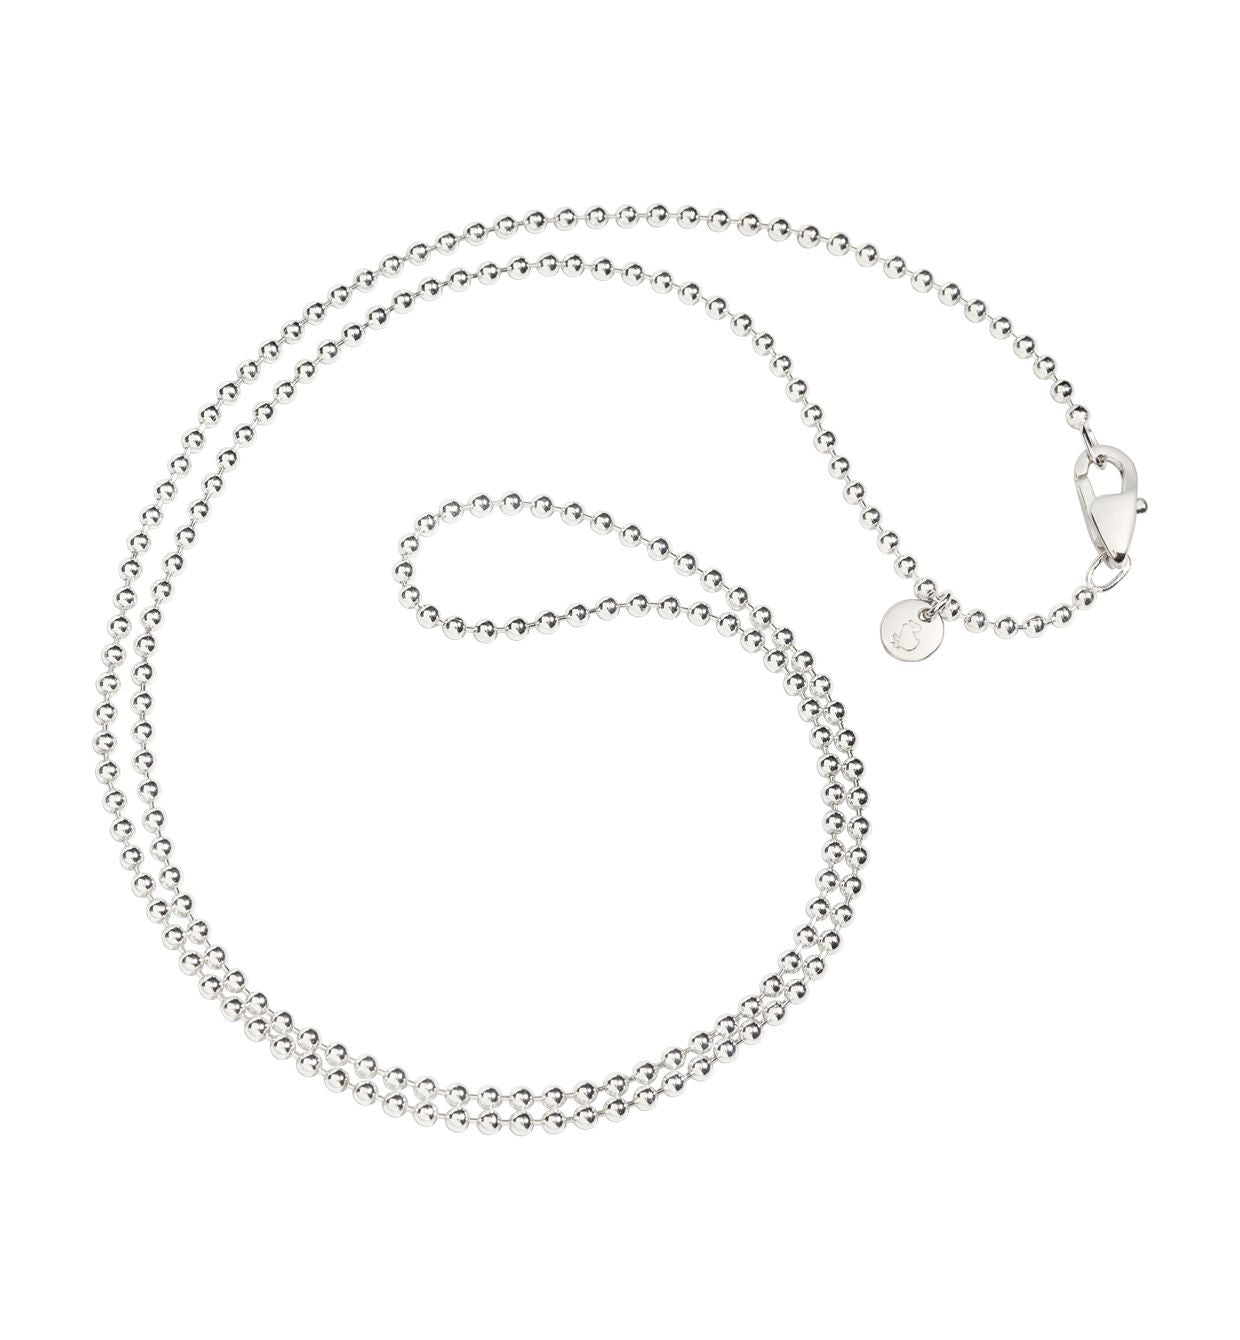 DoDo Bollicine Chain Necklace in Silver - Orsini Jewellers NZ